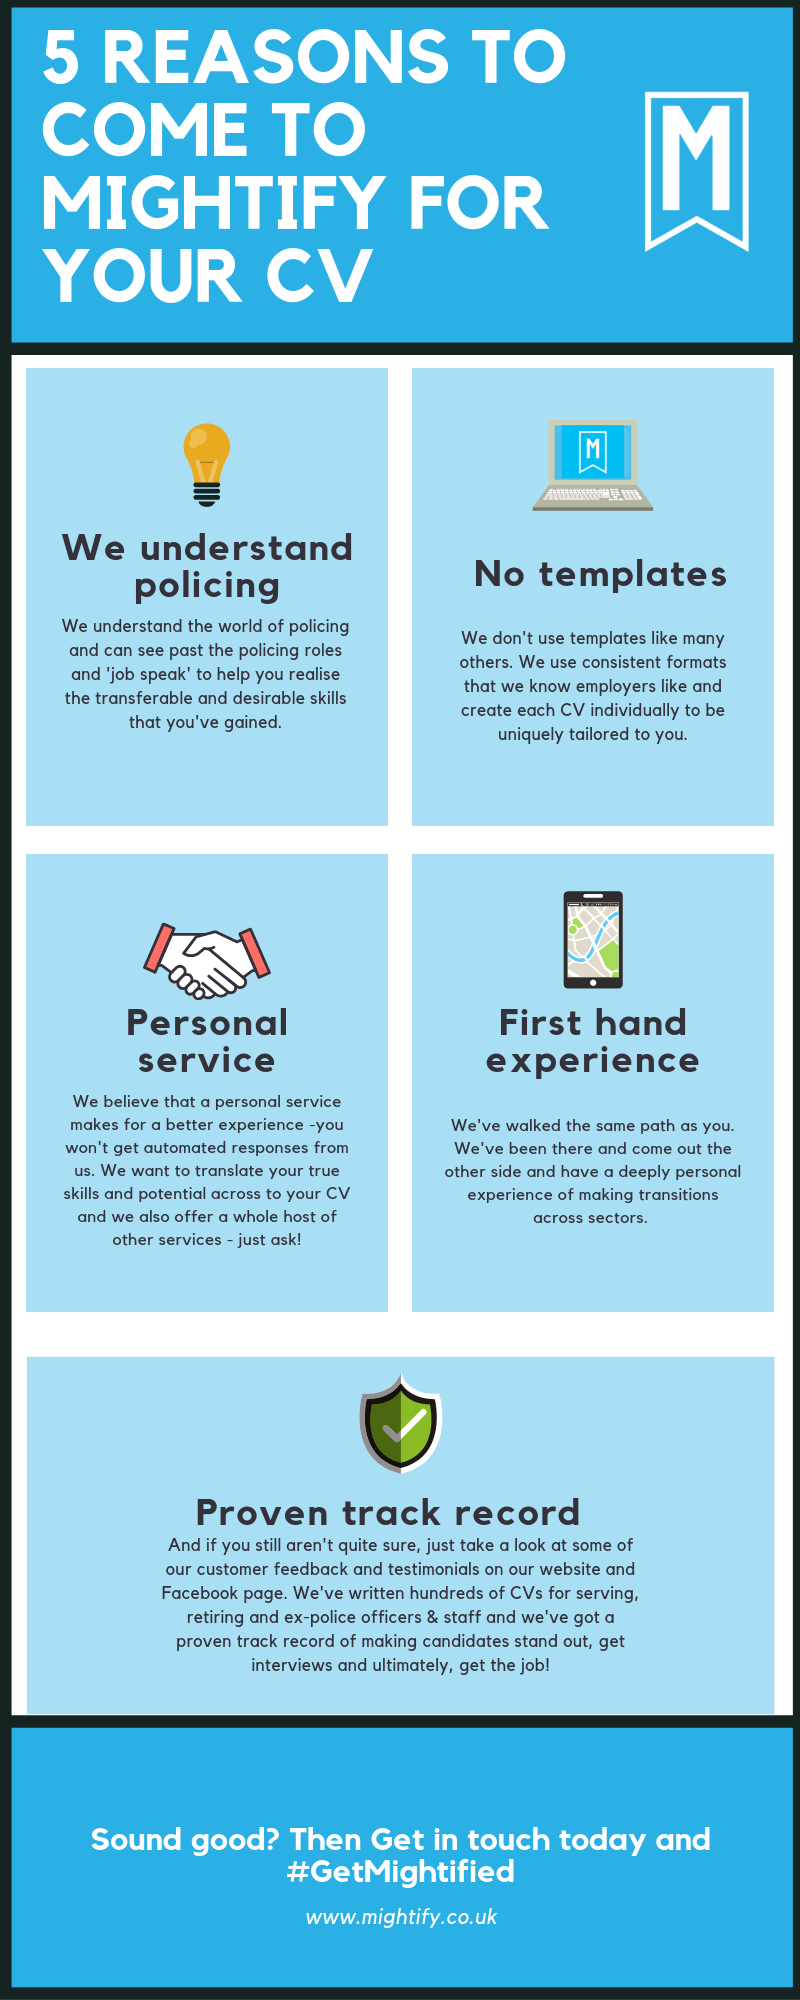 Infographic showing 5 reasons why you should come to Mightify for your CV